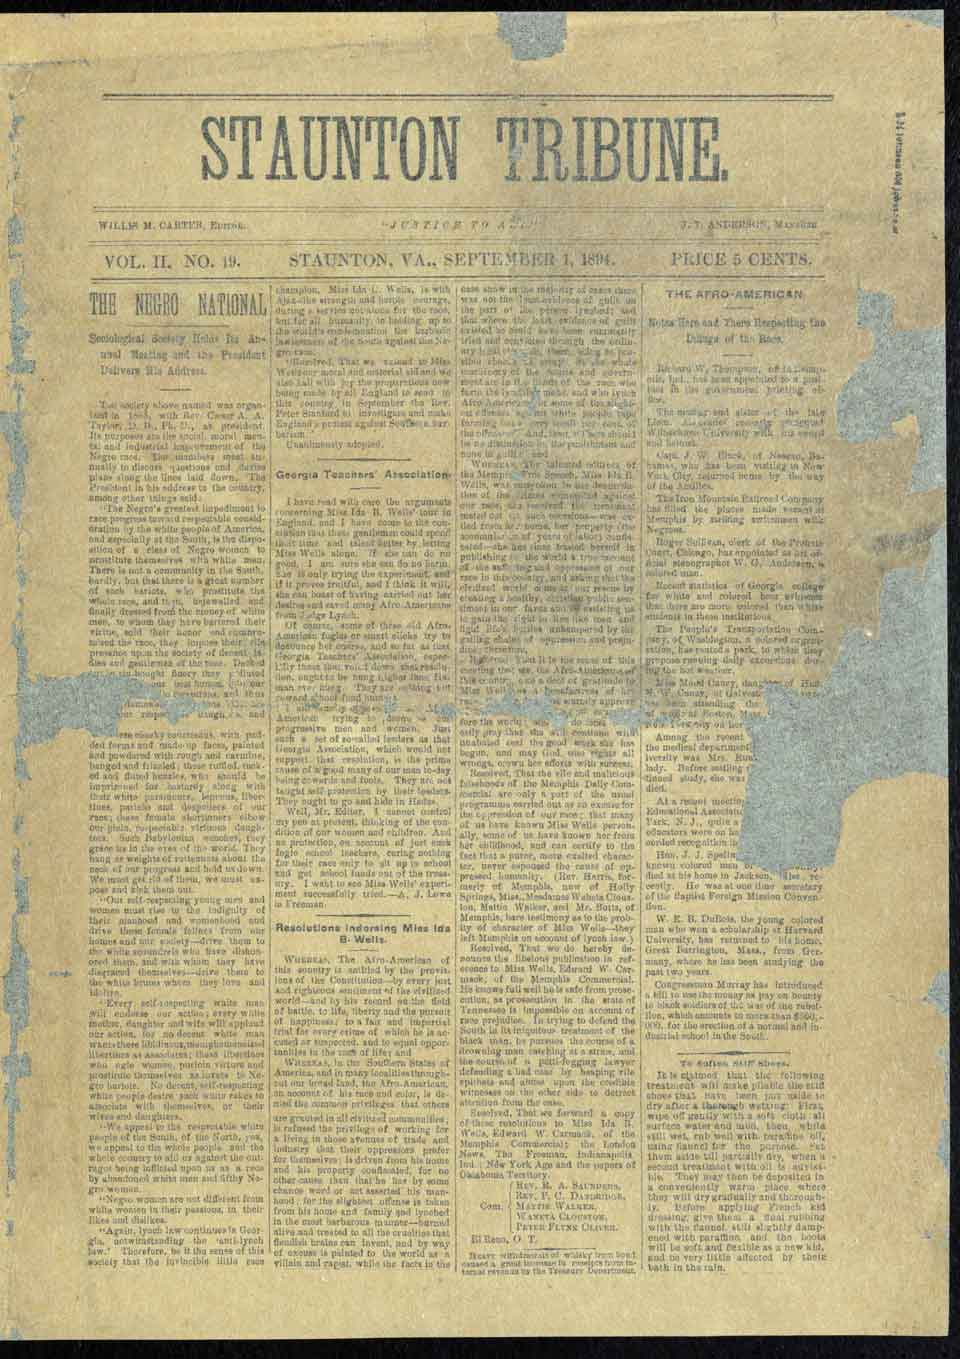 Willis M. Carter Journal and Research Collection Donated to the Library of Virginia